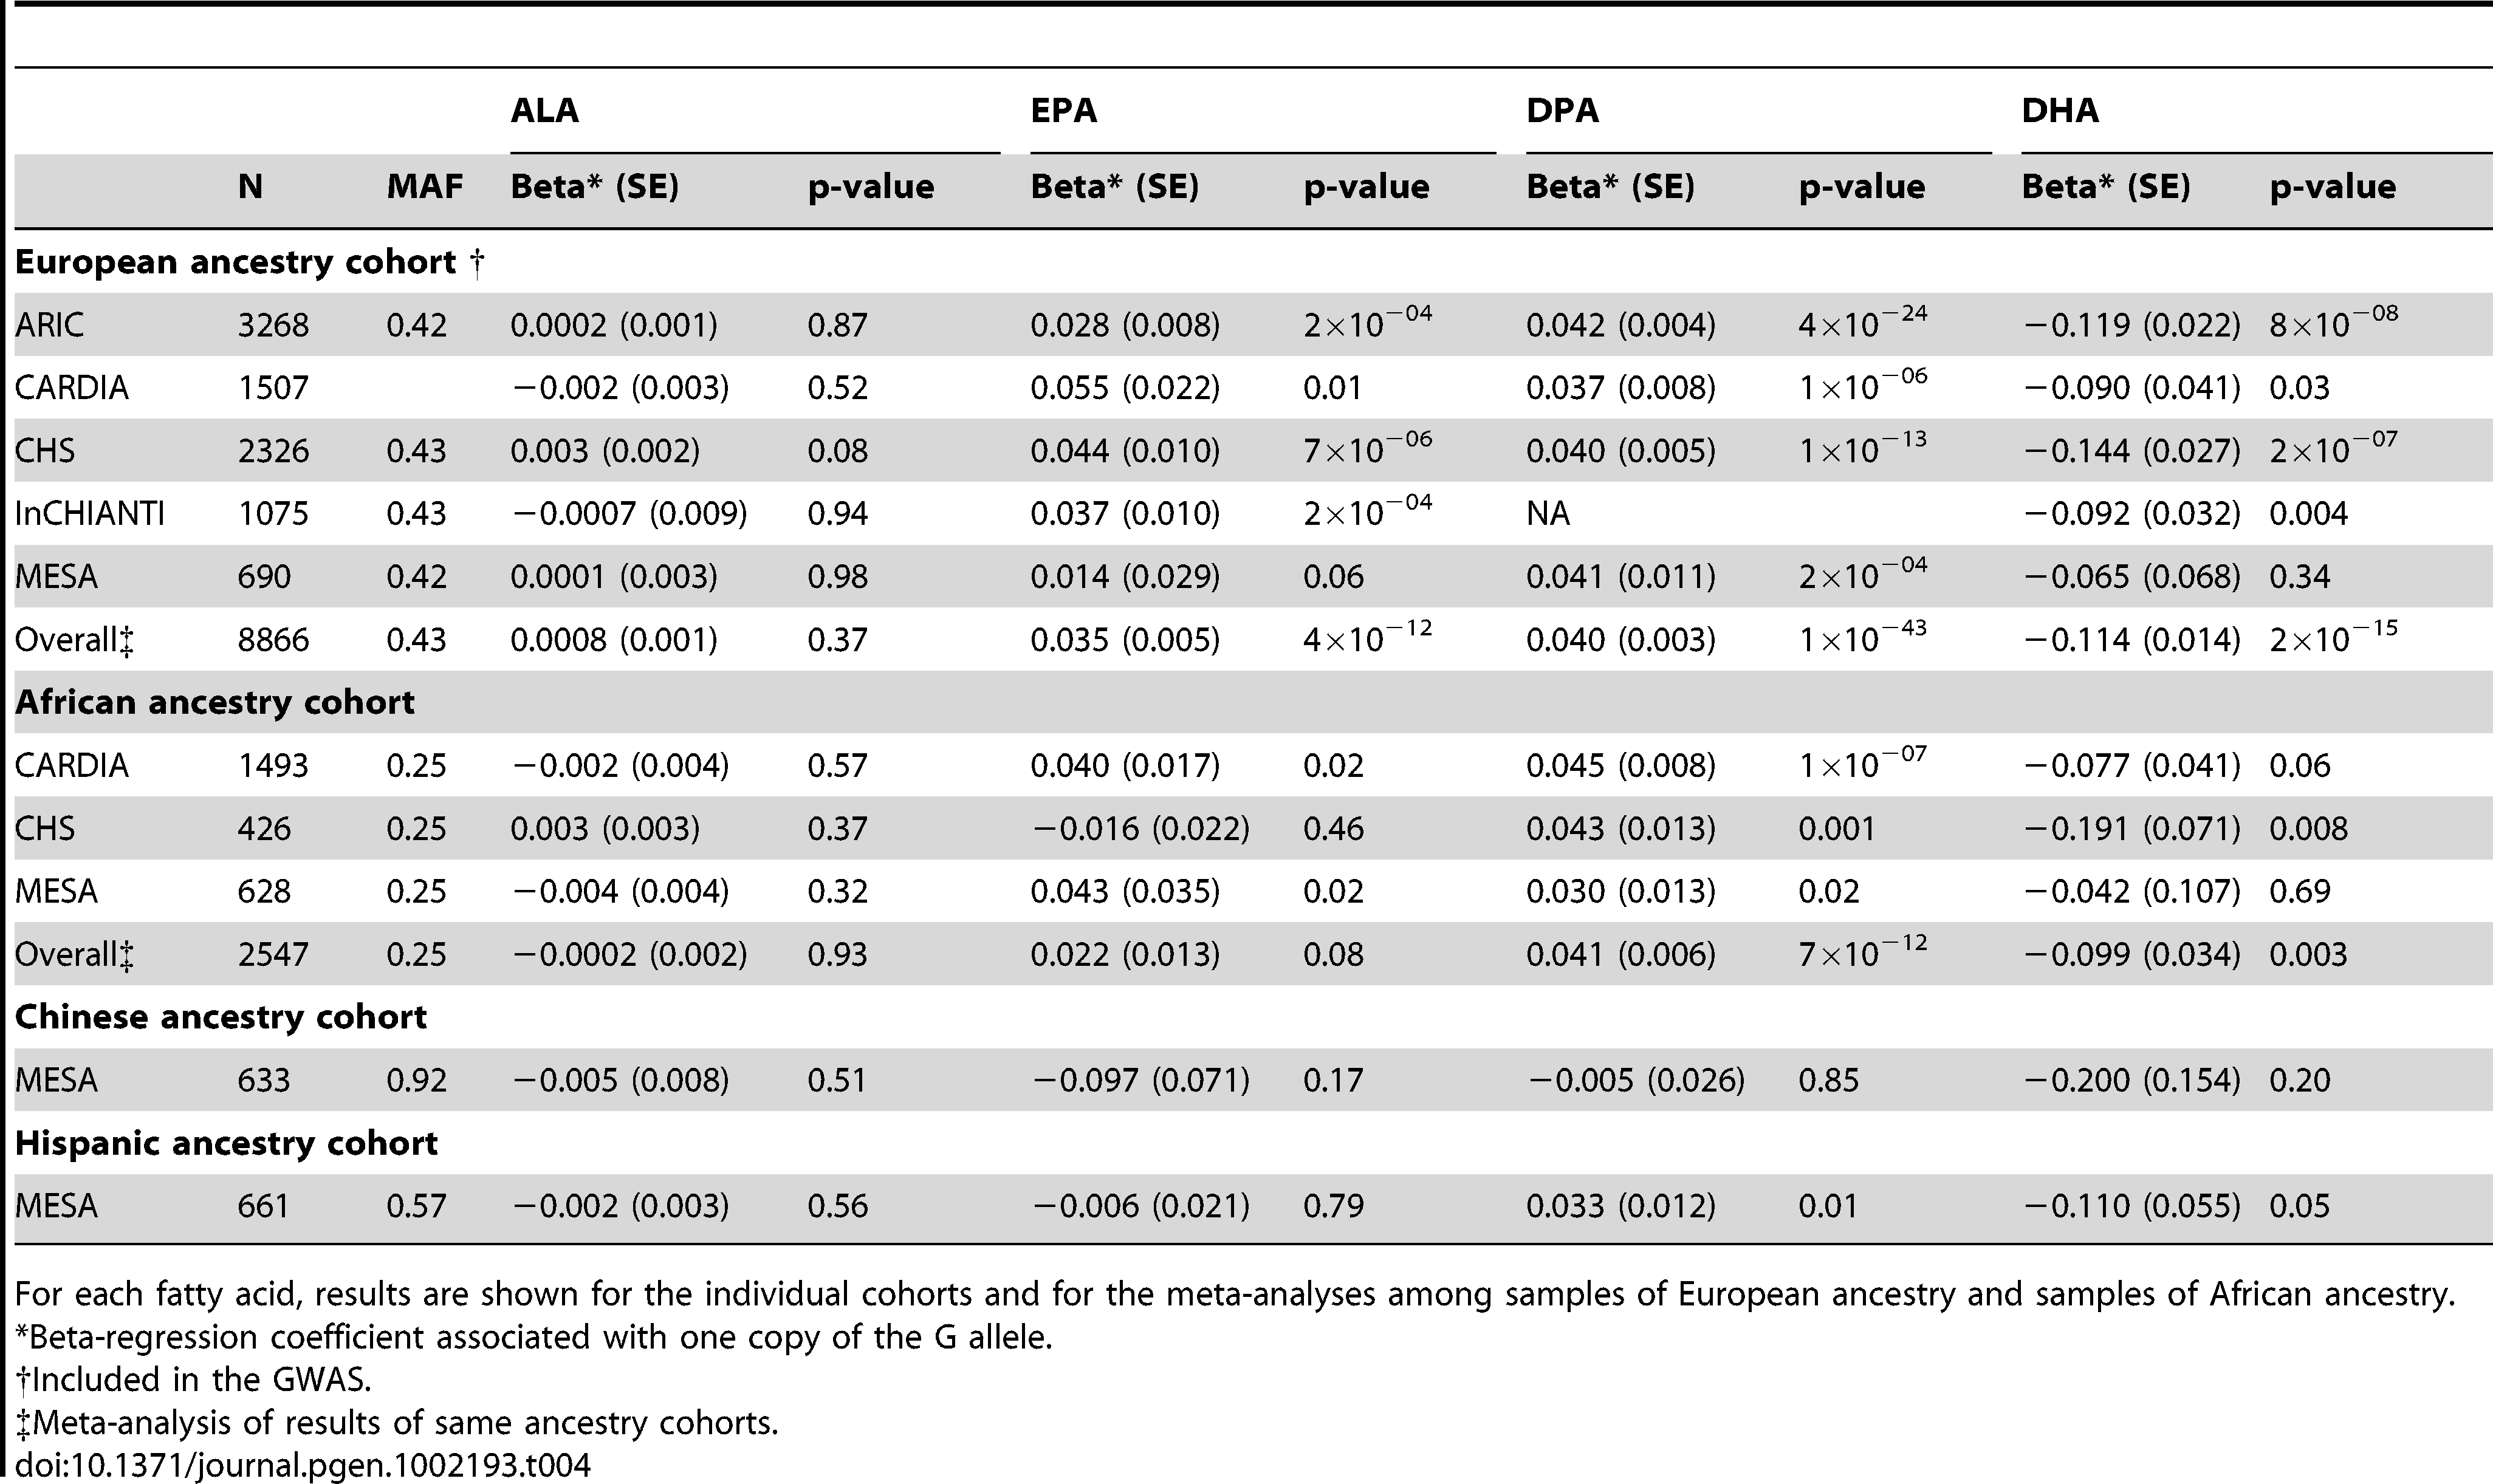 Associations of rs3734398 (C allele) with n-3 polyunsaturated fatty acids in samples of different ancestries.